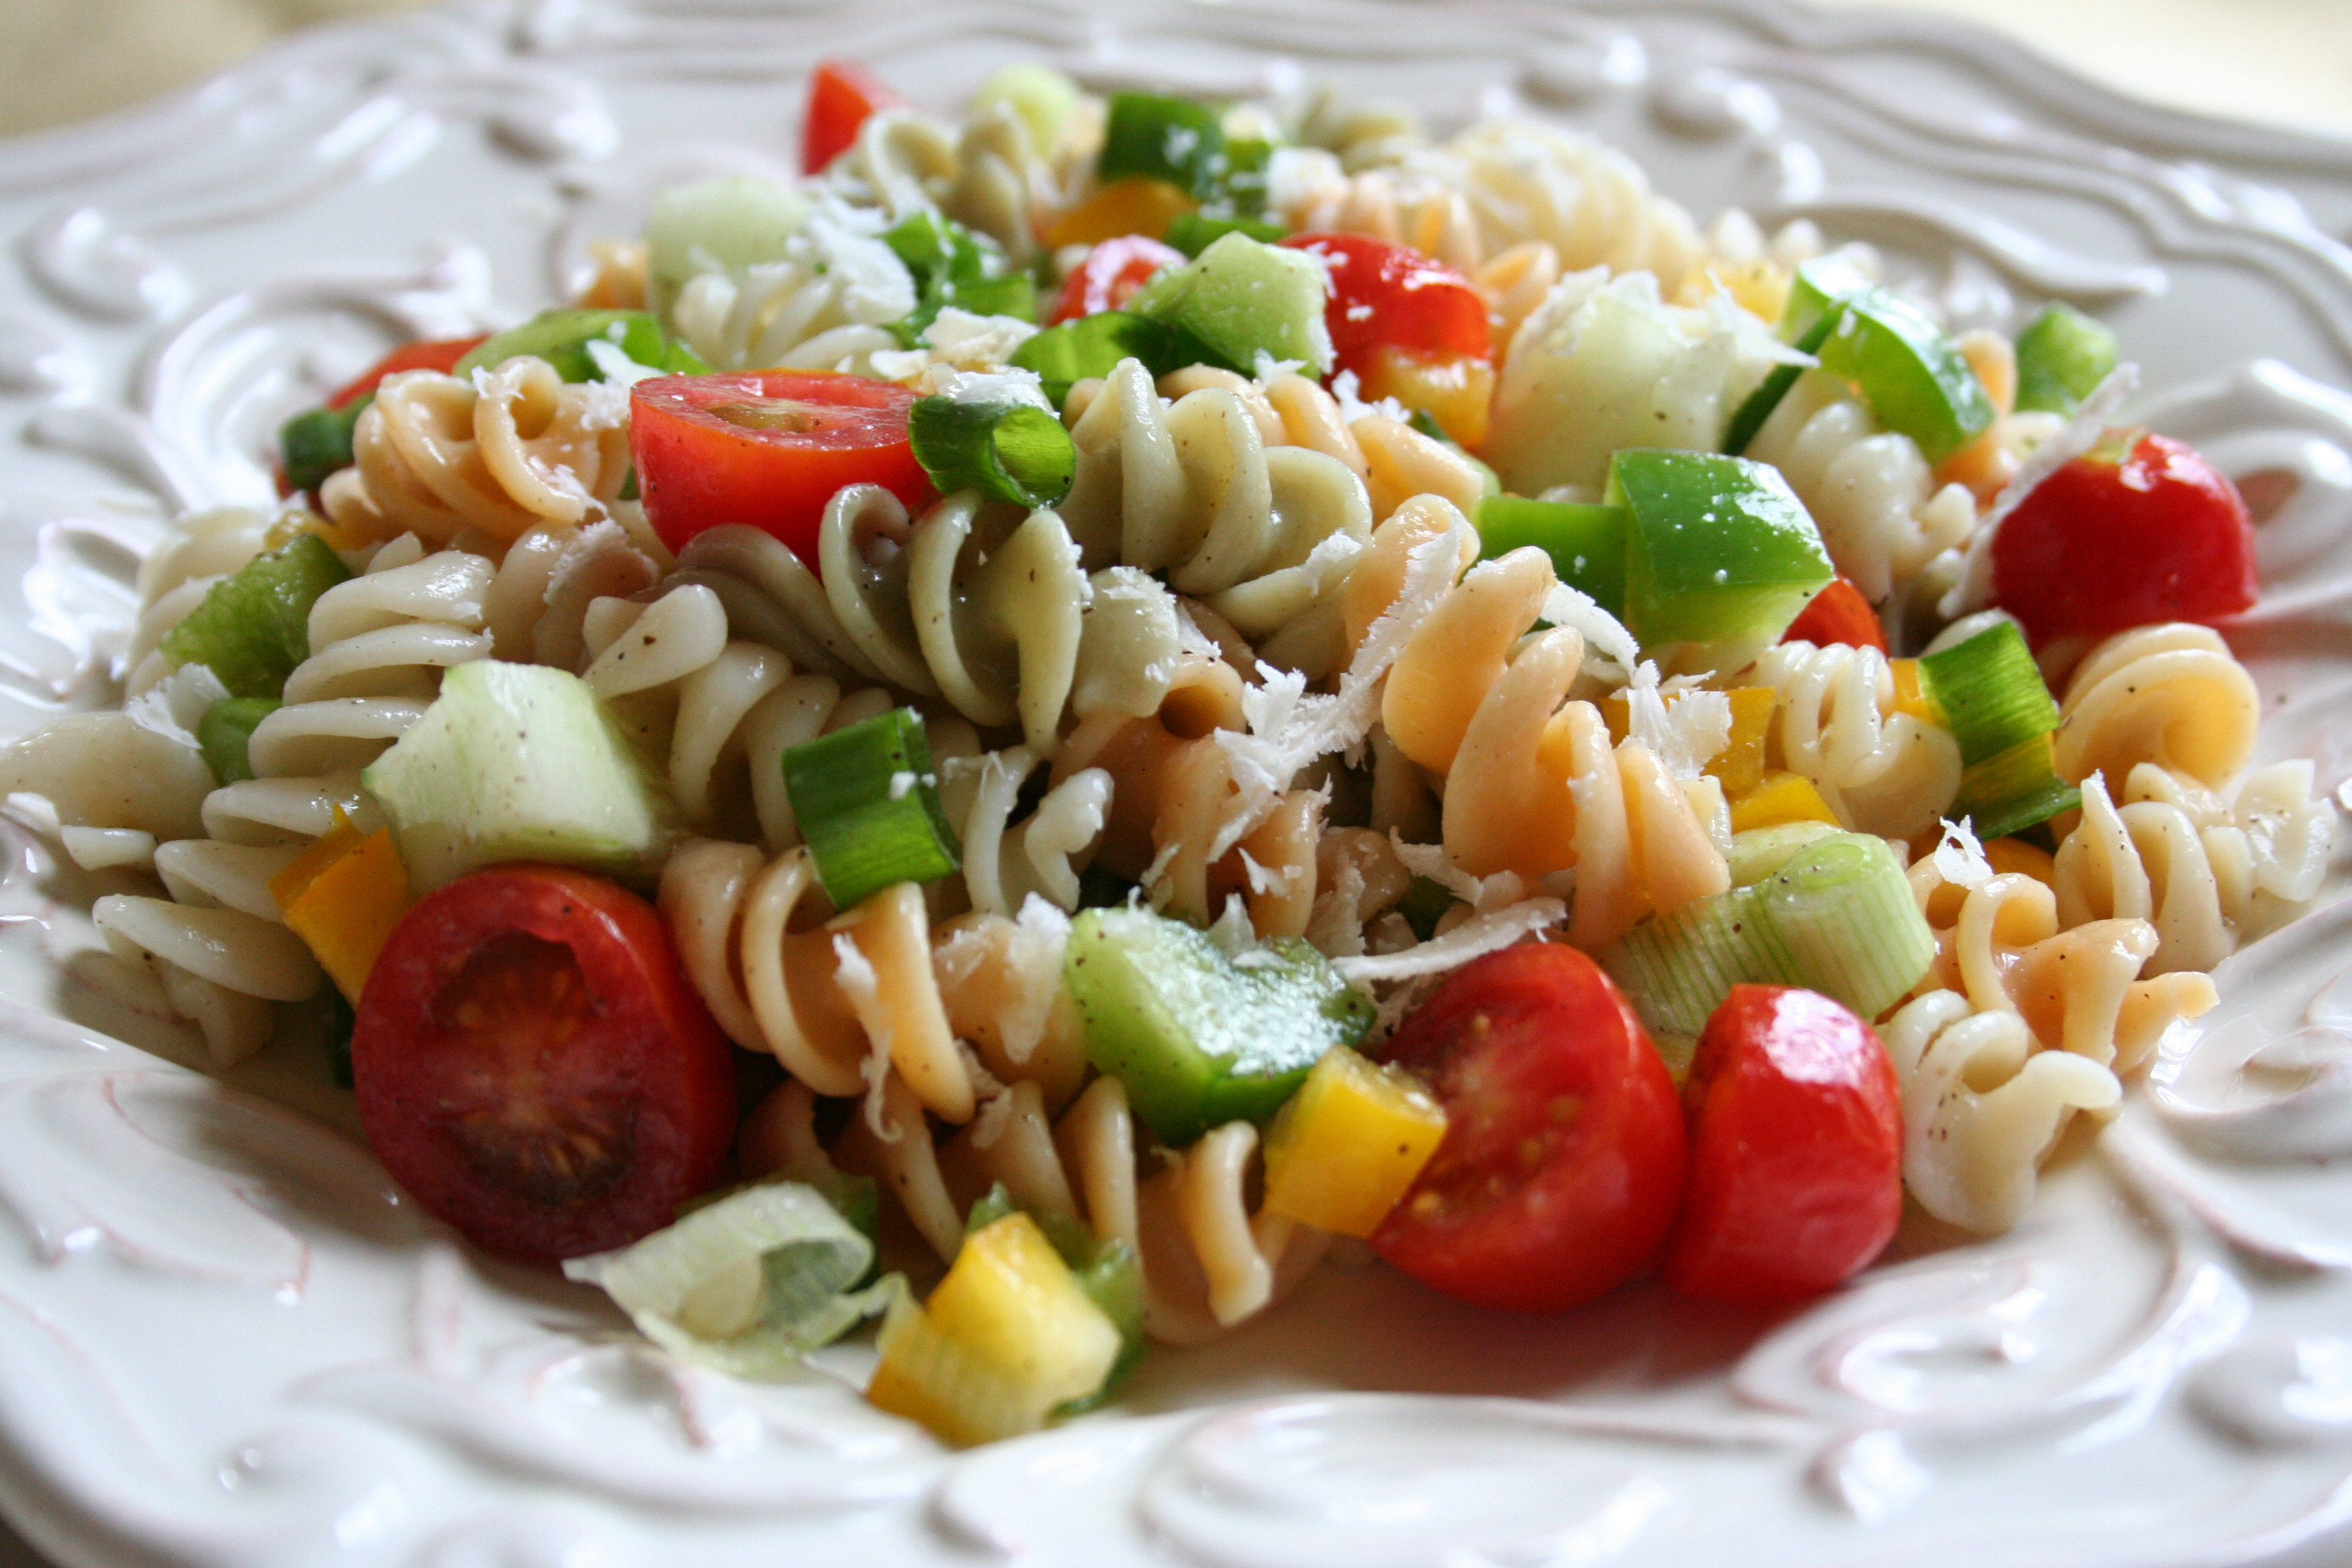 Description Pasta salad closeup.JPG